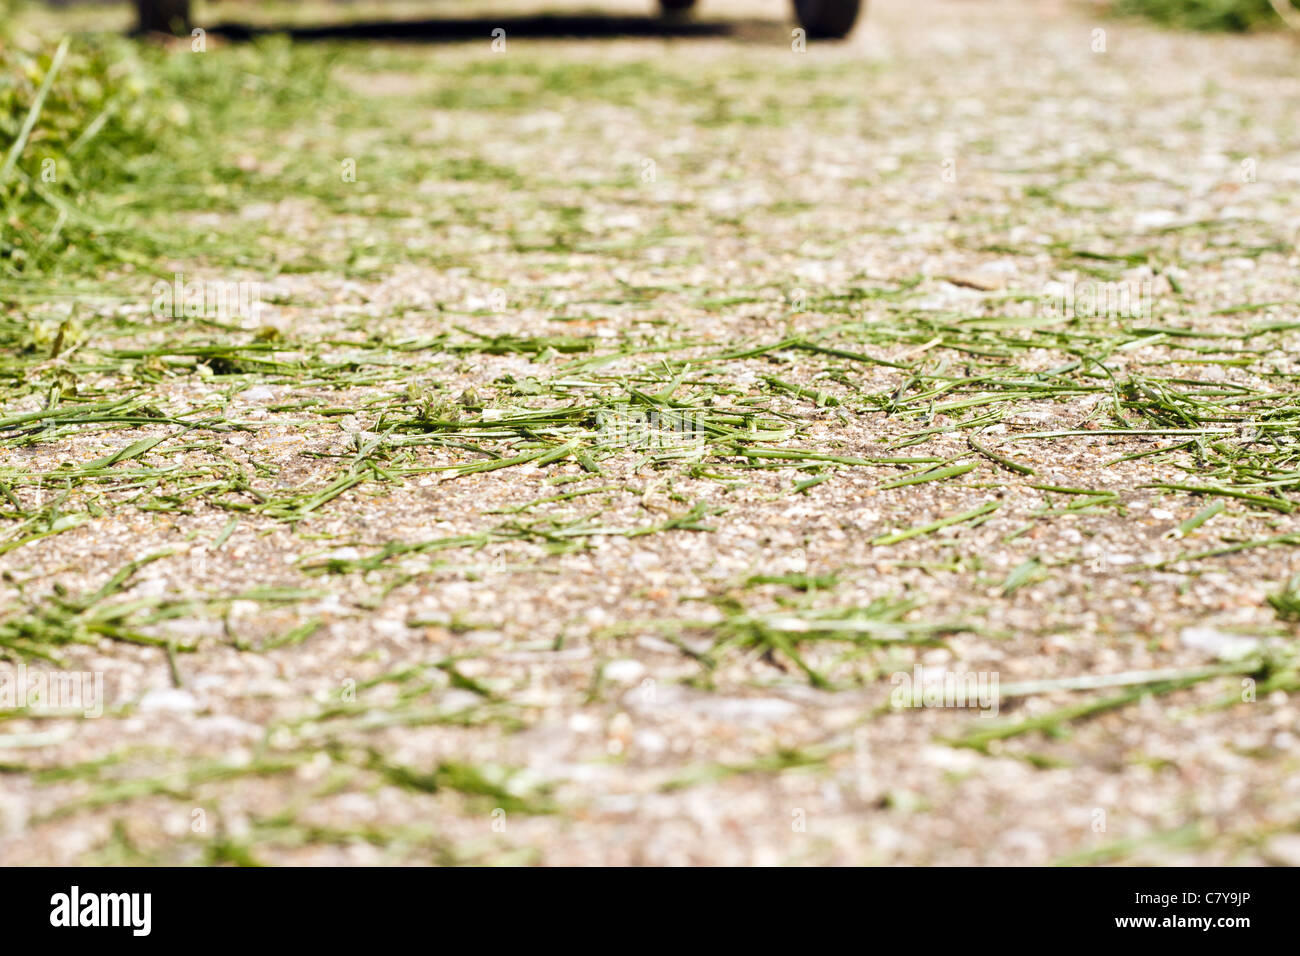 Grass clippings left on sidewalk after recent mow - Stock Image